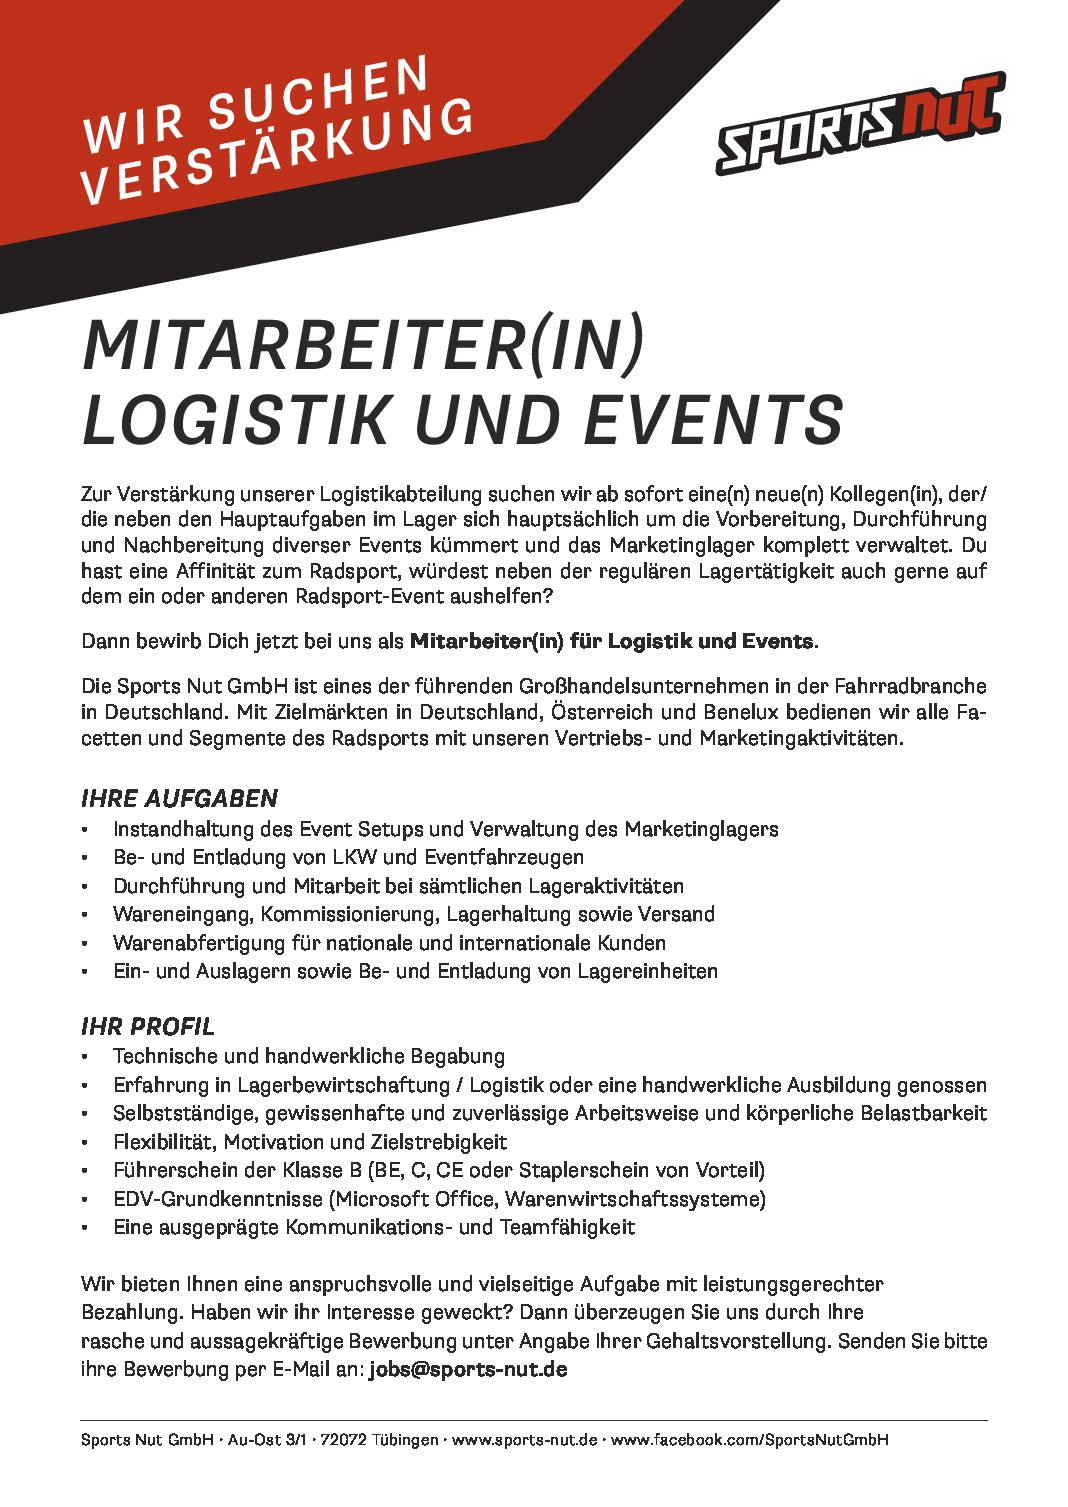 mitarbeiter m w d logistik und events mtb jobs. Black Bedroom Furniture Sets. Home Design Ideas